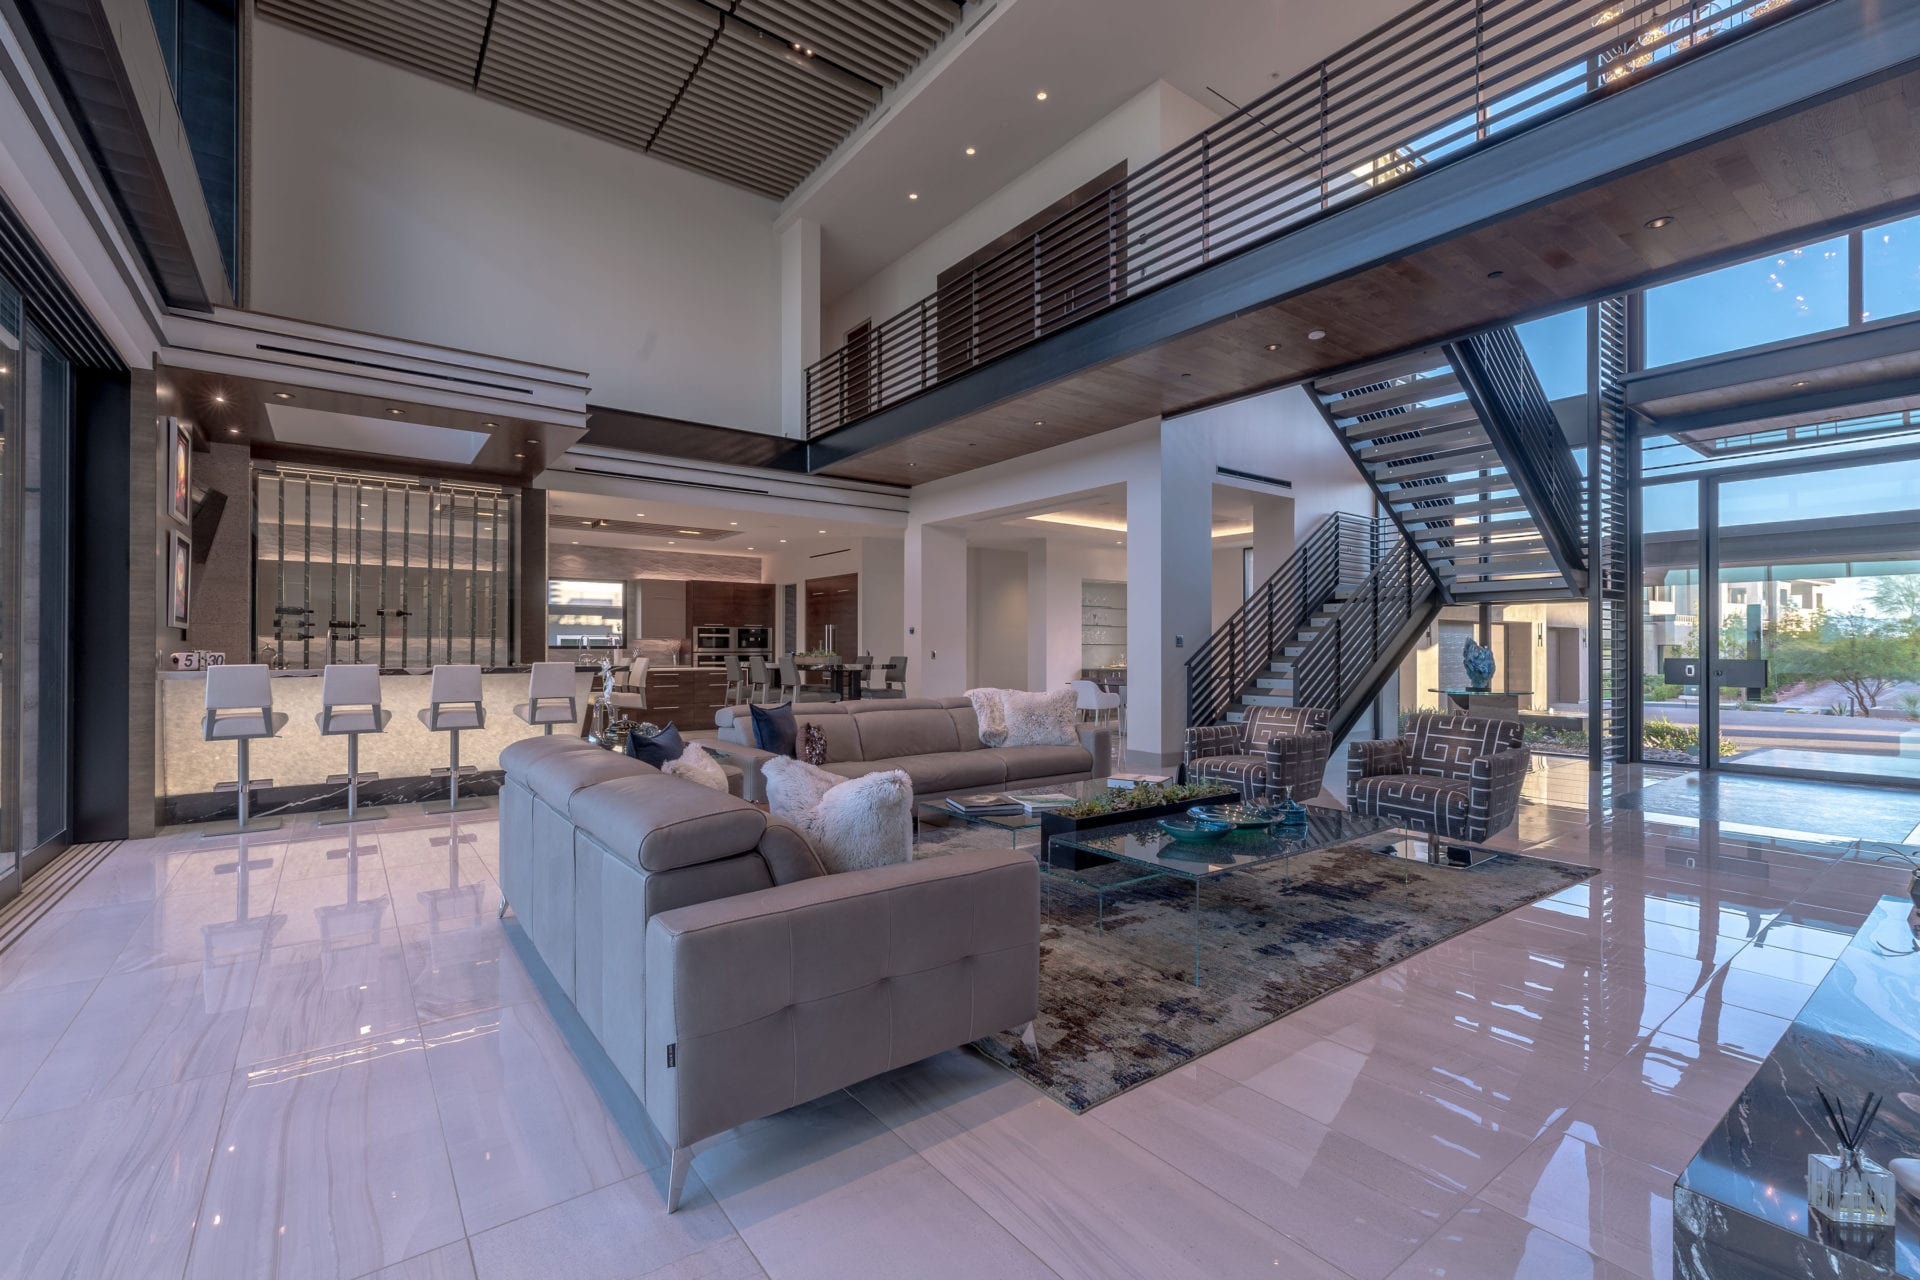 The interior of a modern home with a metal artisan staircase by JD Stairs